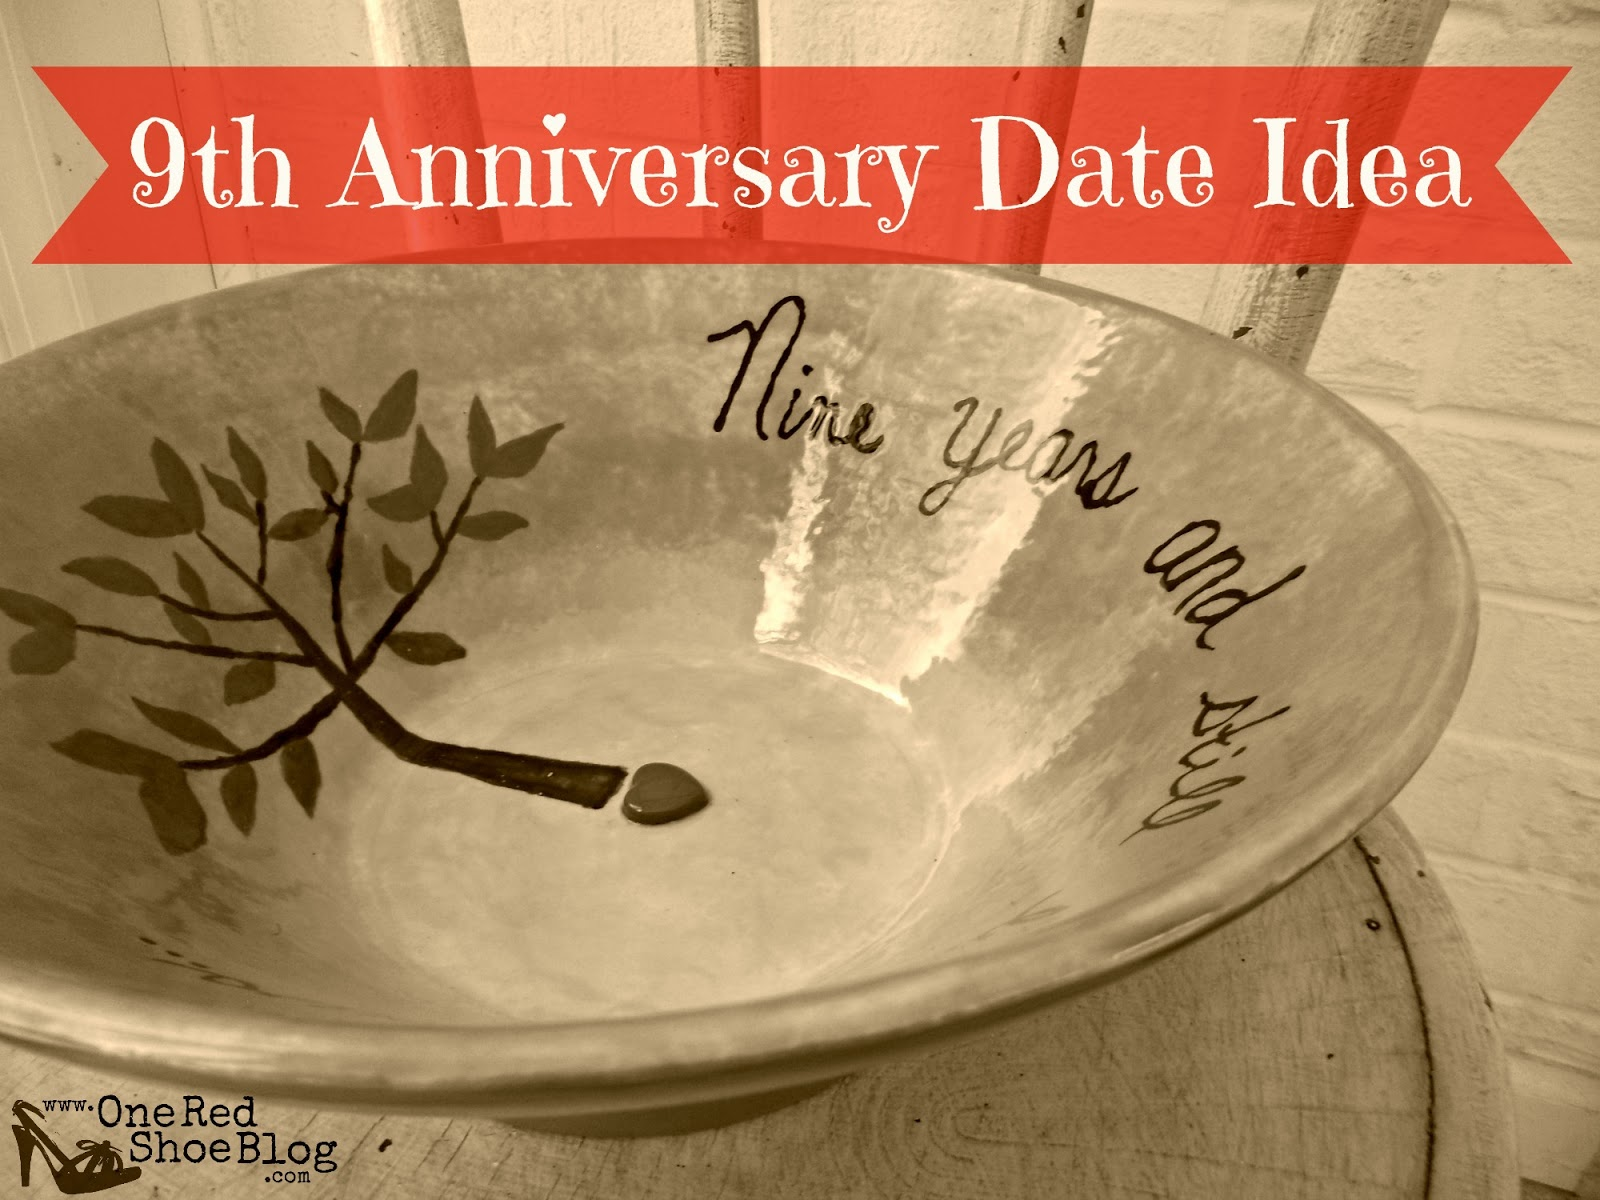 Wedding Gifts For Him And Her India : Wedding Anniversary Gifts: Wedding Anniversary Gifts Ninth